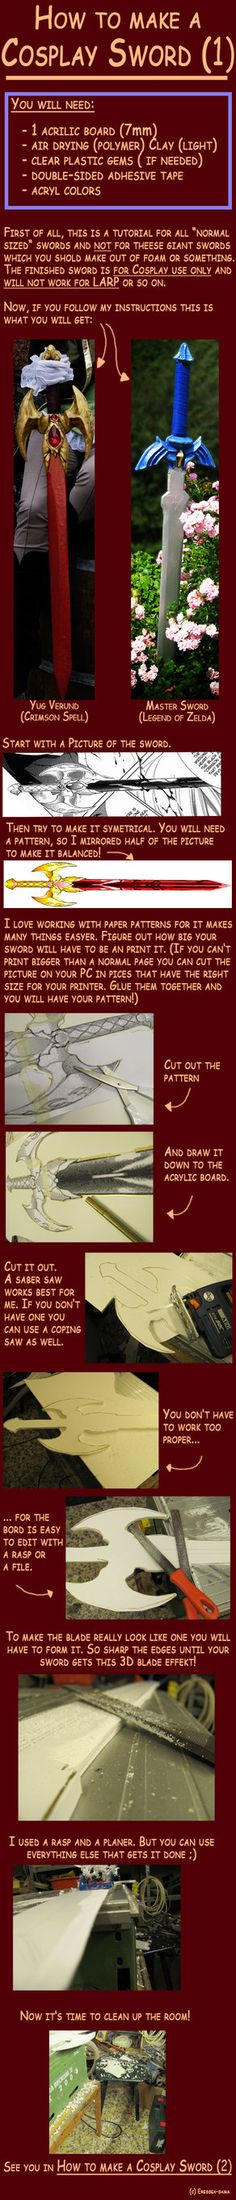 How to make a Cosplay Sword 1 by *Eressea-sama on deviantART